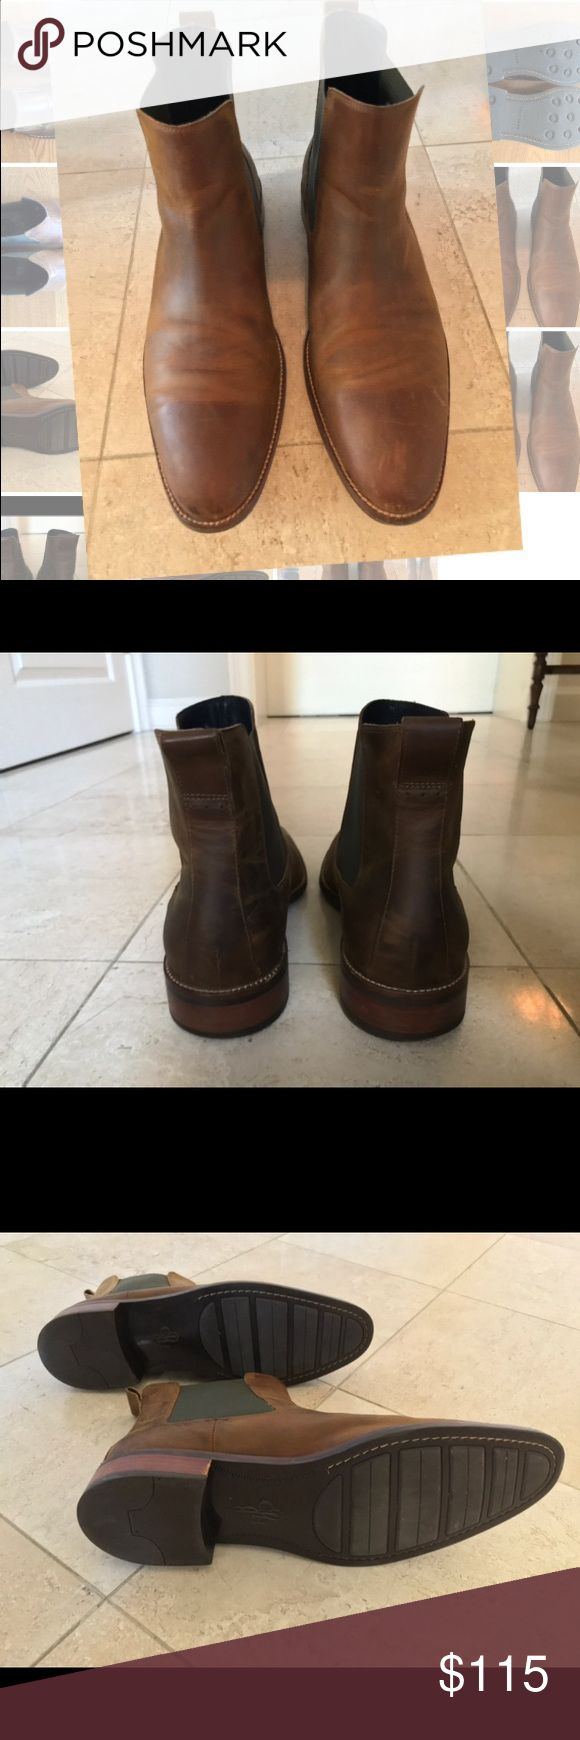 Cole Haan Lenox Hill Chelsea Boot Cooper Men's Cole Haan Lenox Hill Chelsea Boot Cooper WATER RESISTANT. Lightly used. Size 11 M Cole Haan Shoes